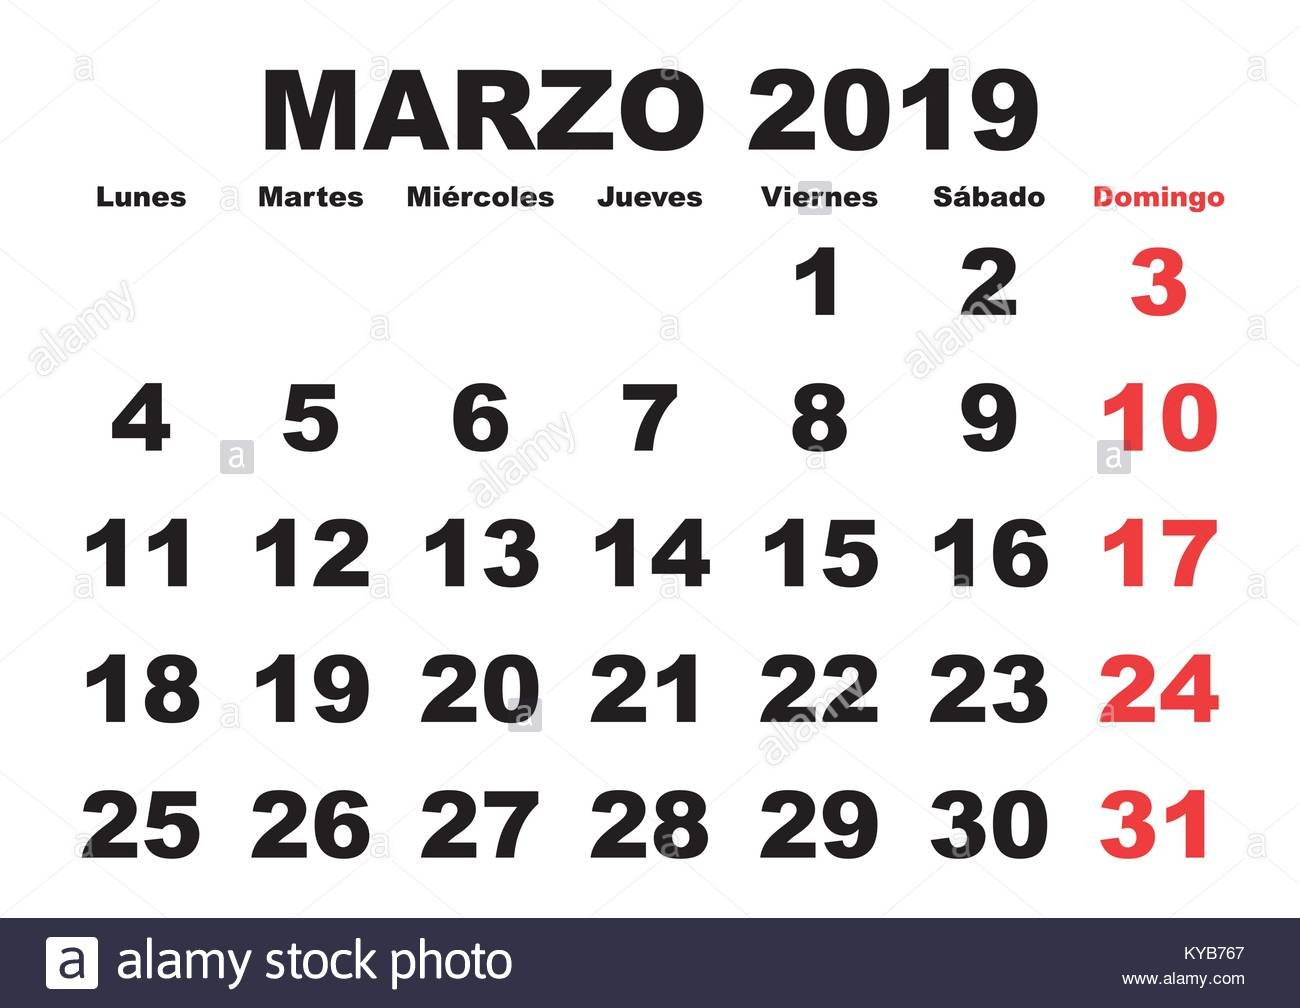 March Month In A Year 2019 Wall Calendar In Spanish. Marzo 2019 March 8 2019 Calendar